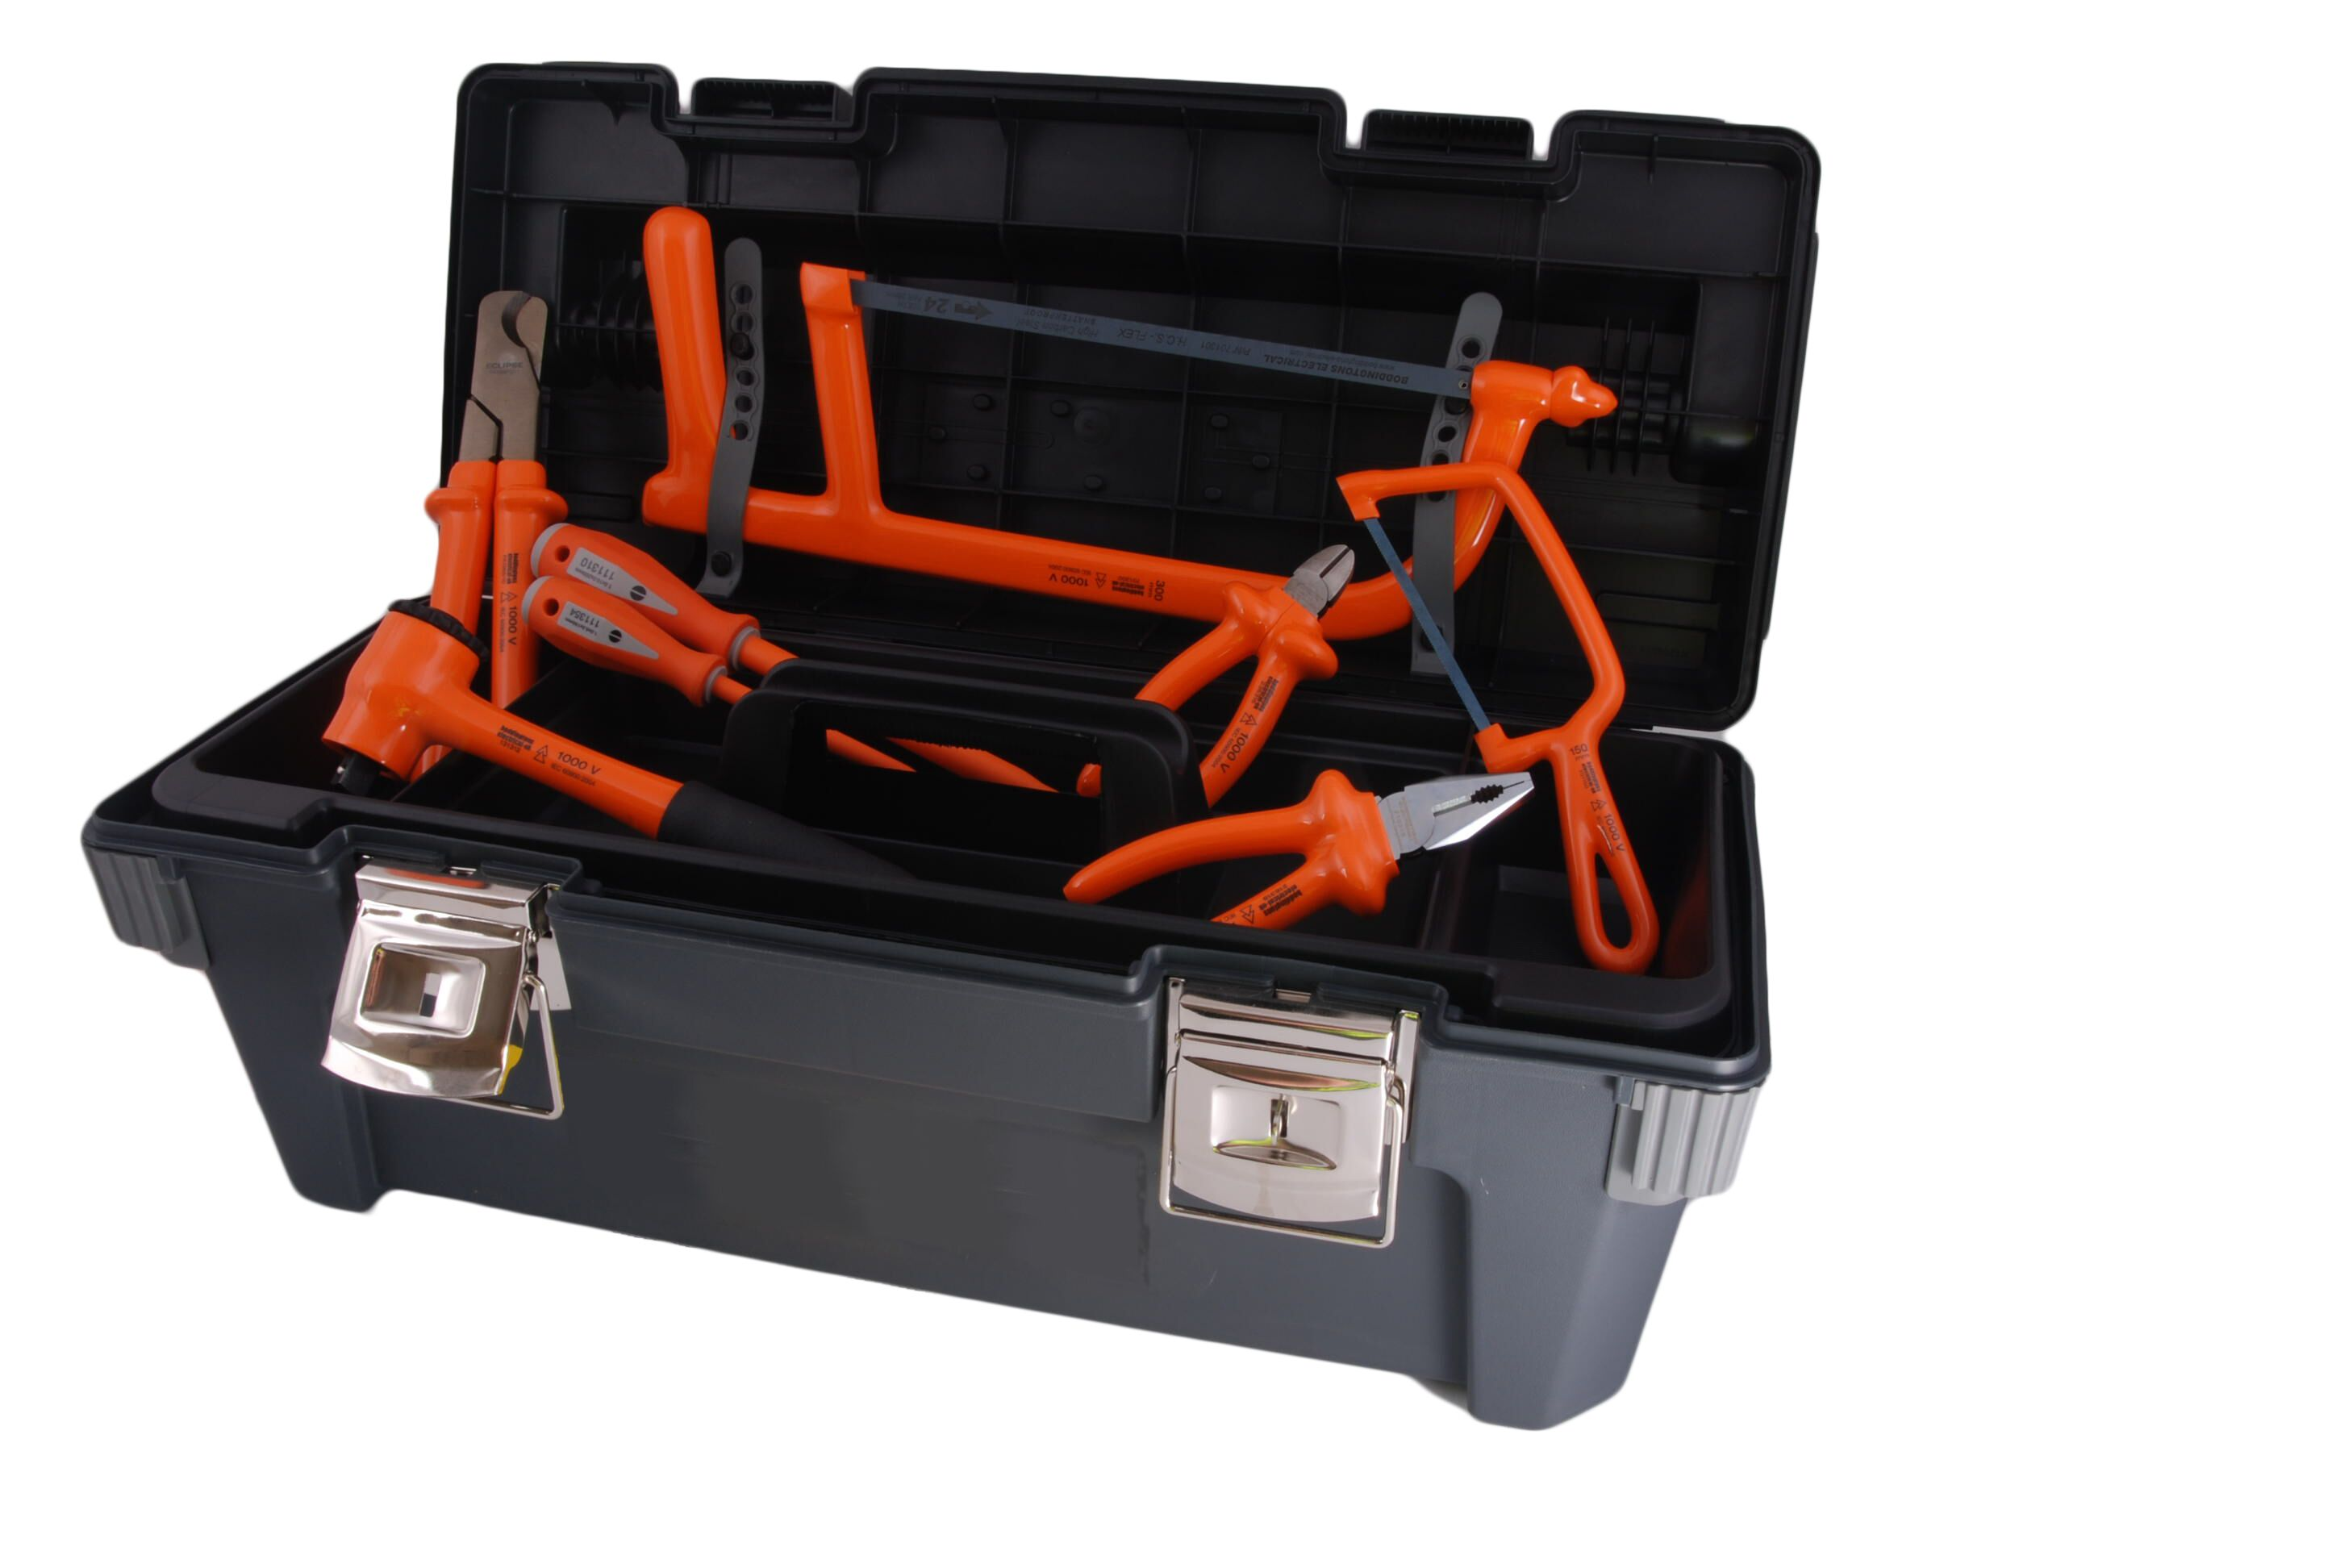 Boddingtons Electrical 240K02 32 Piece Jointer's Tool Kit 2 - Insulated Tools For Live Line Working & Electrical Safety